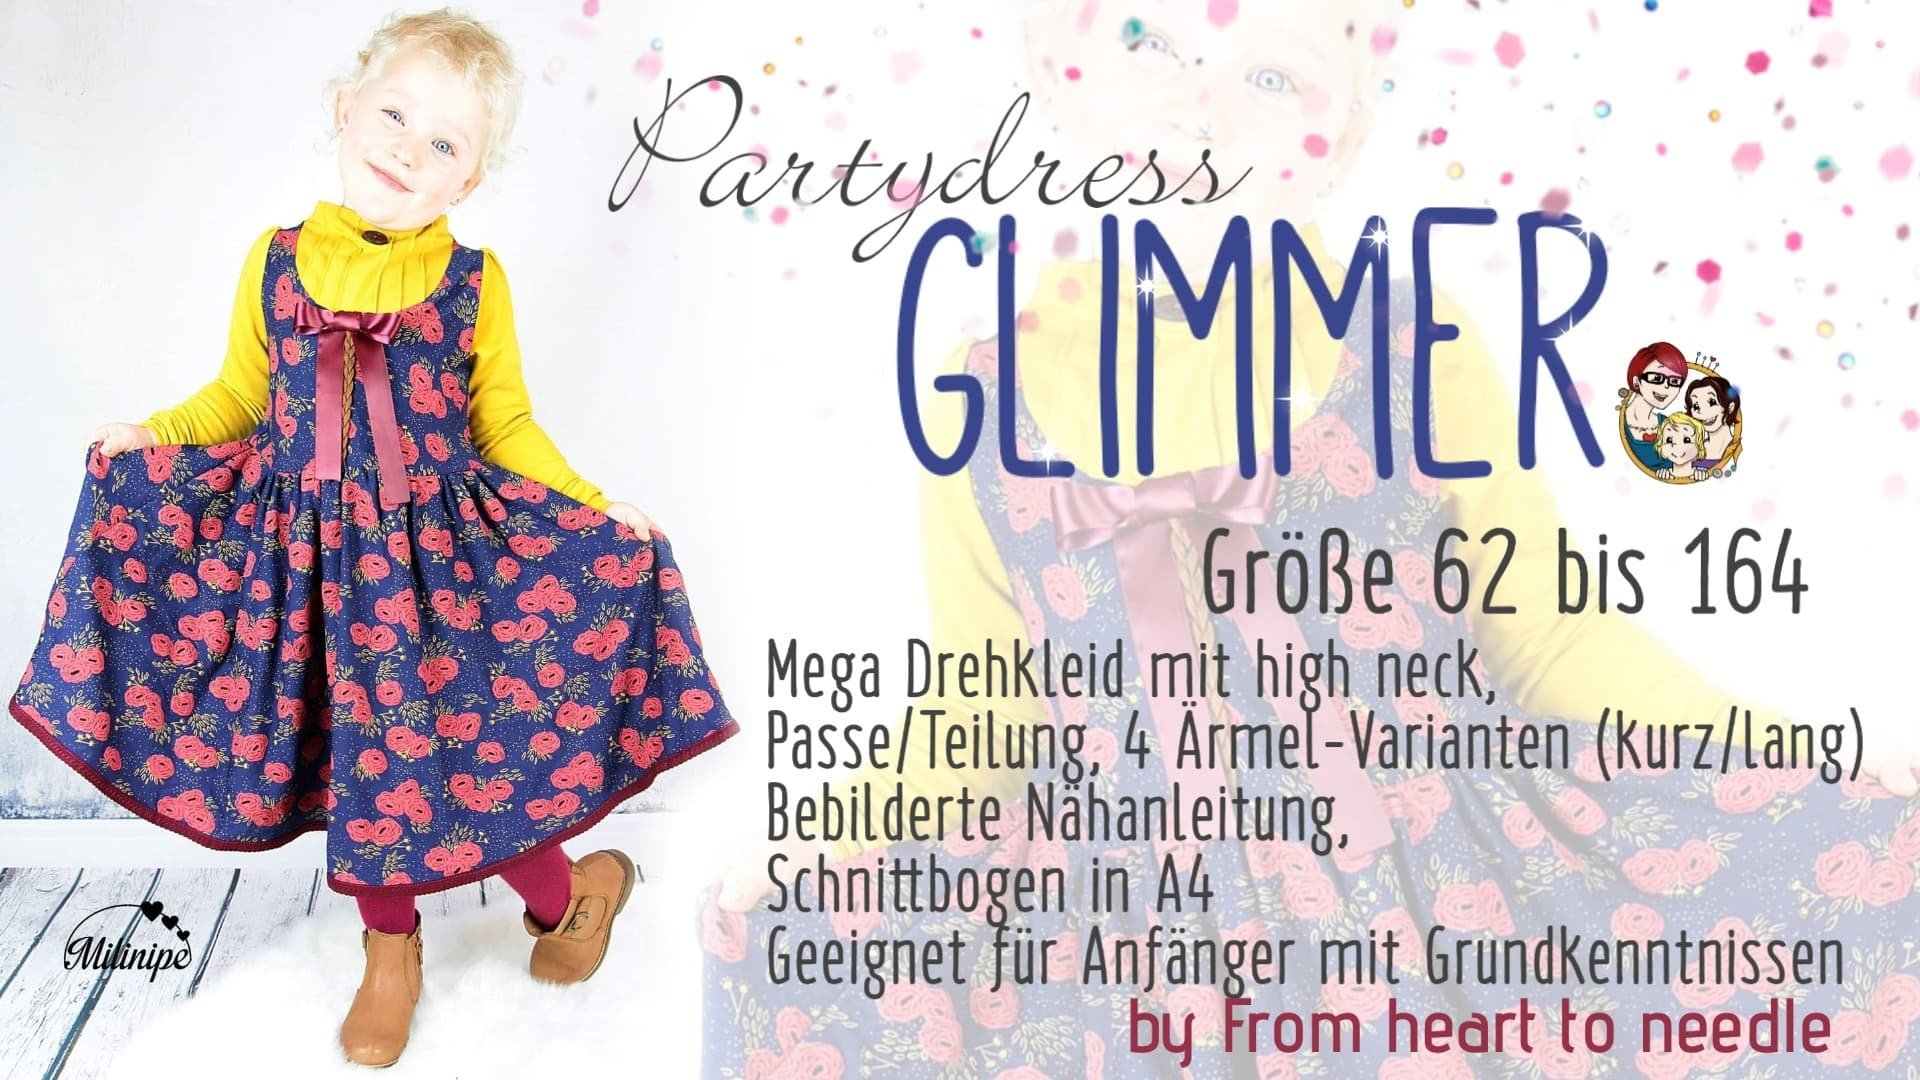 Partydress #Glimmer